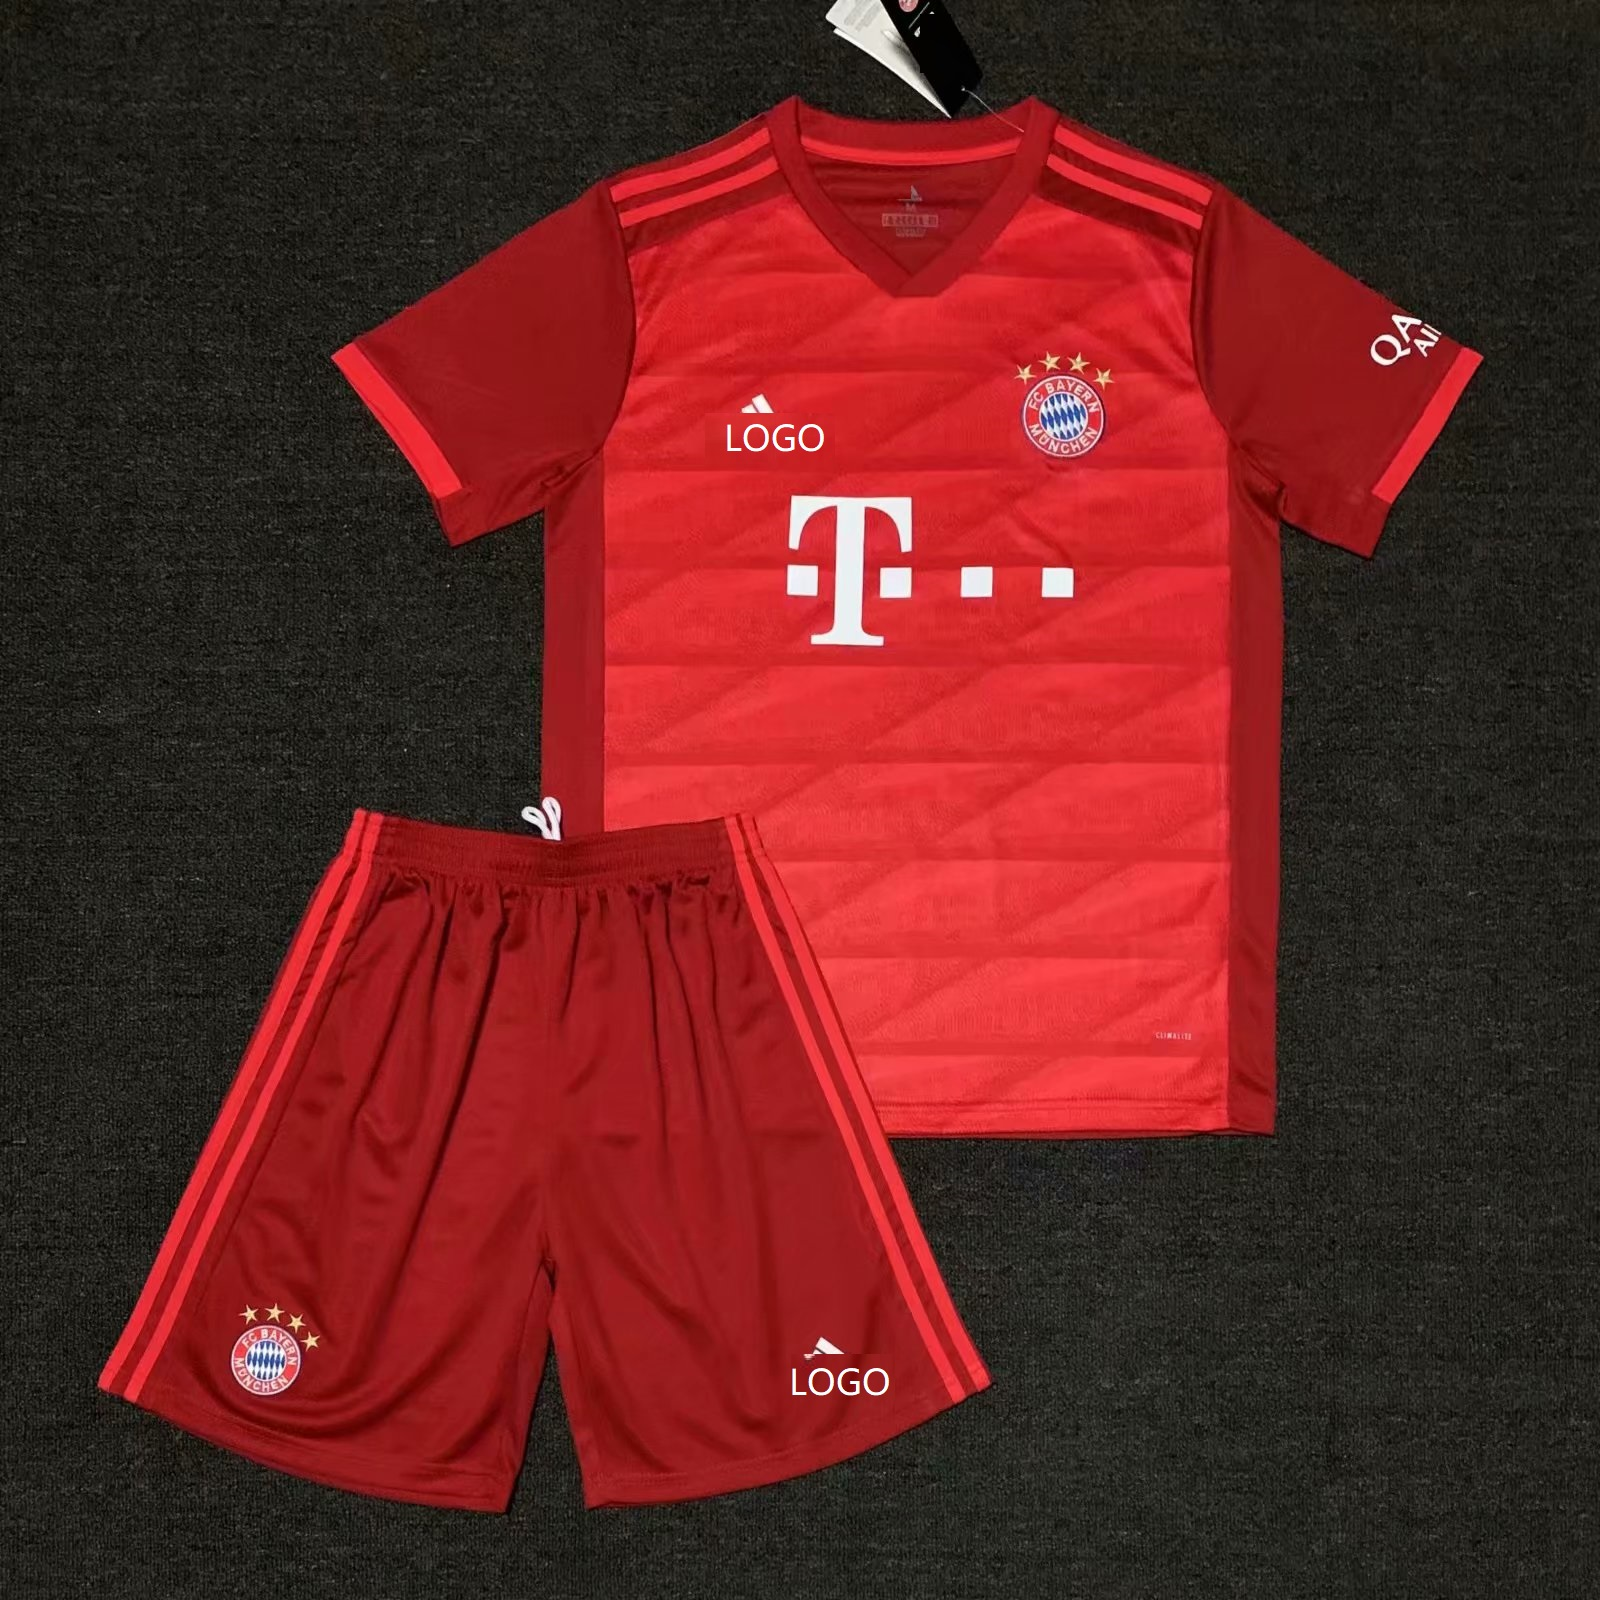 4166cd61 2019/20 AAA Quality Bayern red Adult Soccer uniforms customize name number